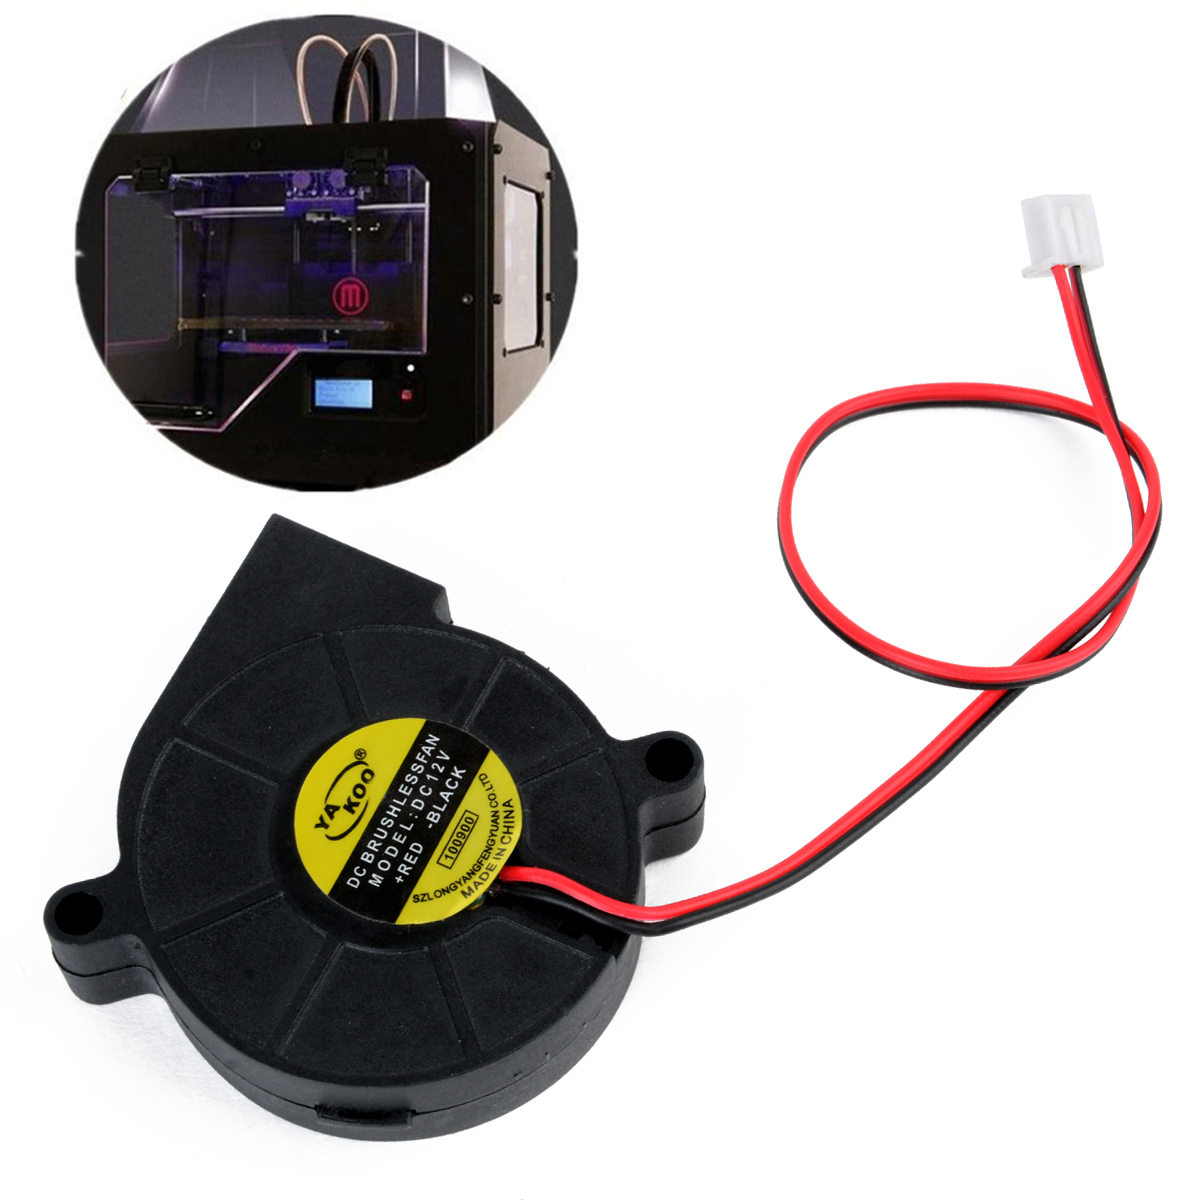 DC 12V 50mm Blow Radial Cooling Fan with Low Noise For Hotend / Extruder RepRap 3D Printer Parts delta 12038 12v cooling fan afb1212ehe afb1212he afb1212hhe afb1212le afb1212she afb1212vhe afb1212me